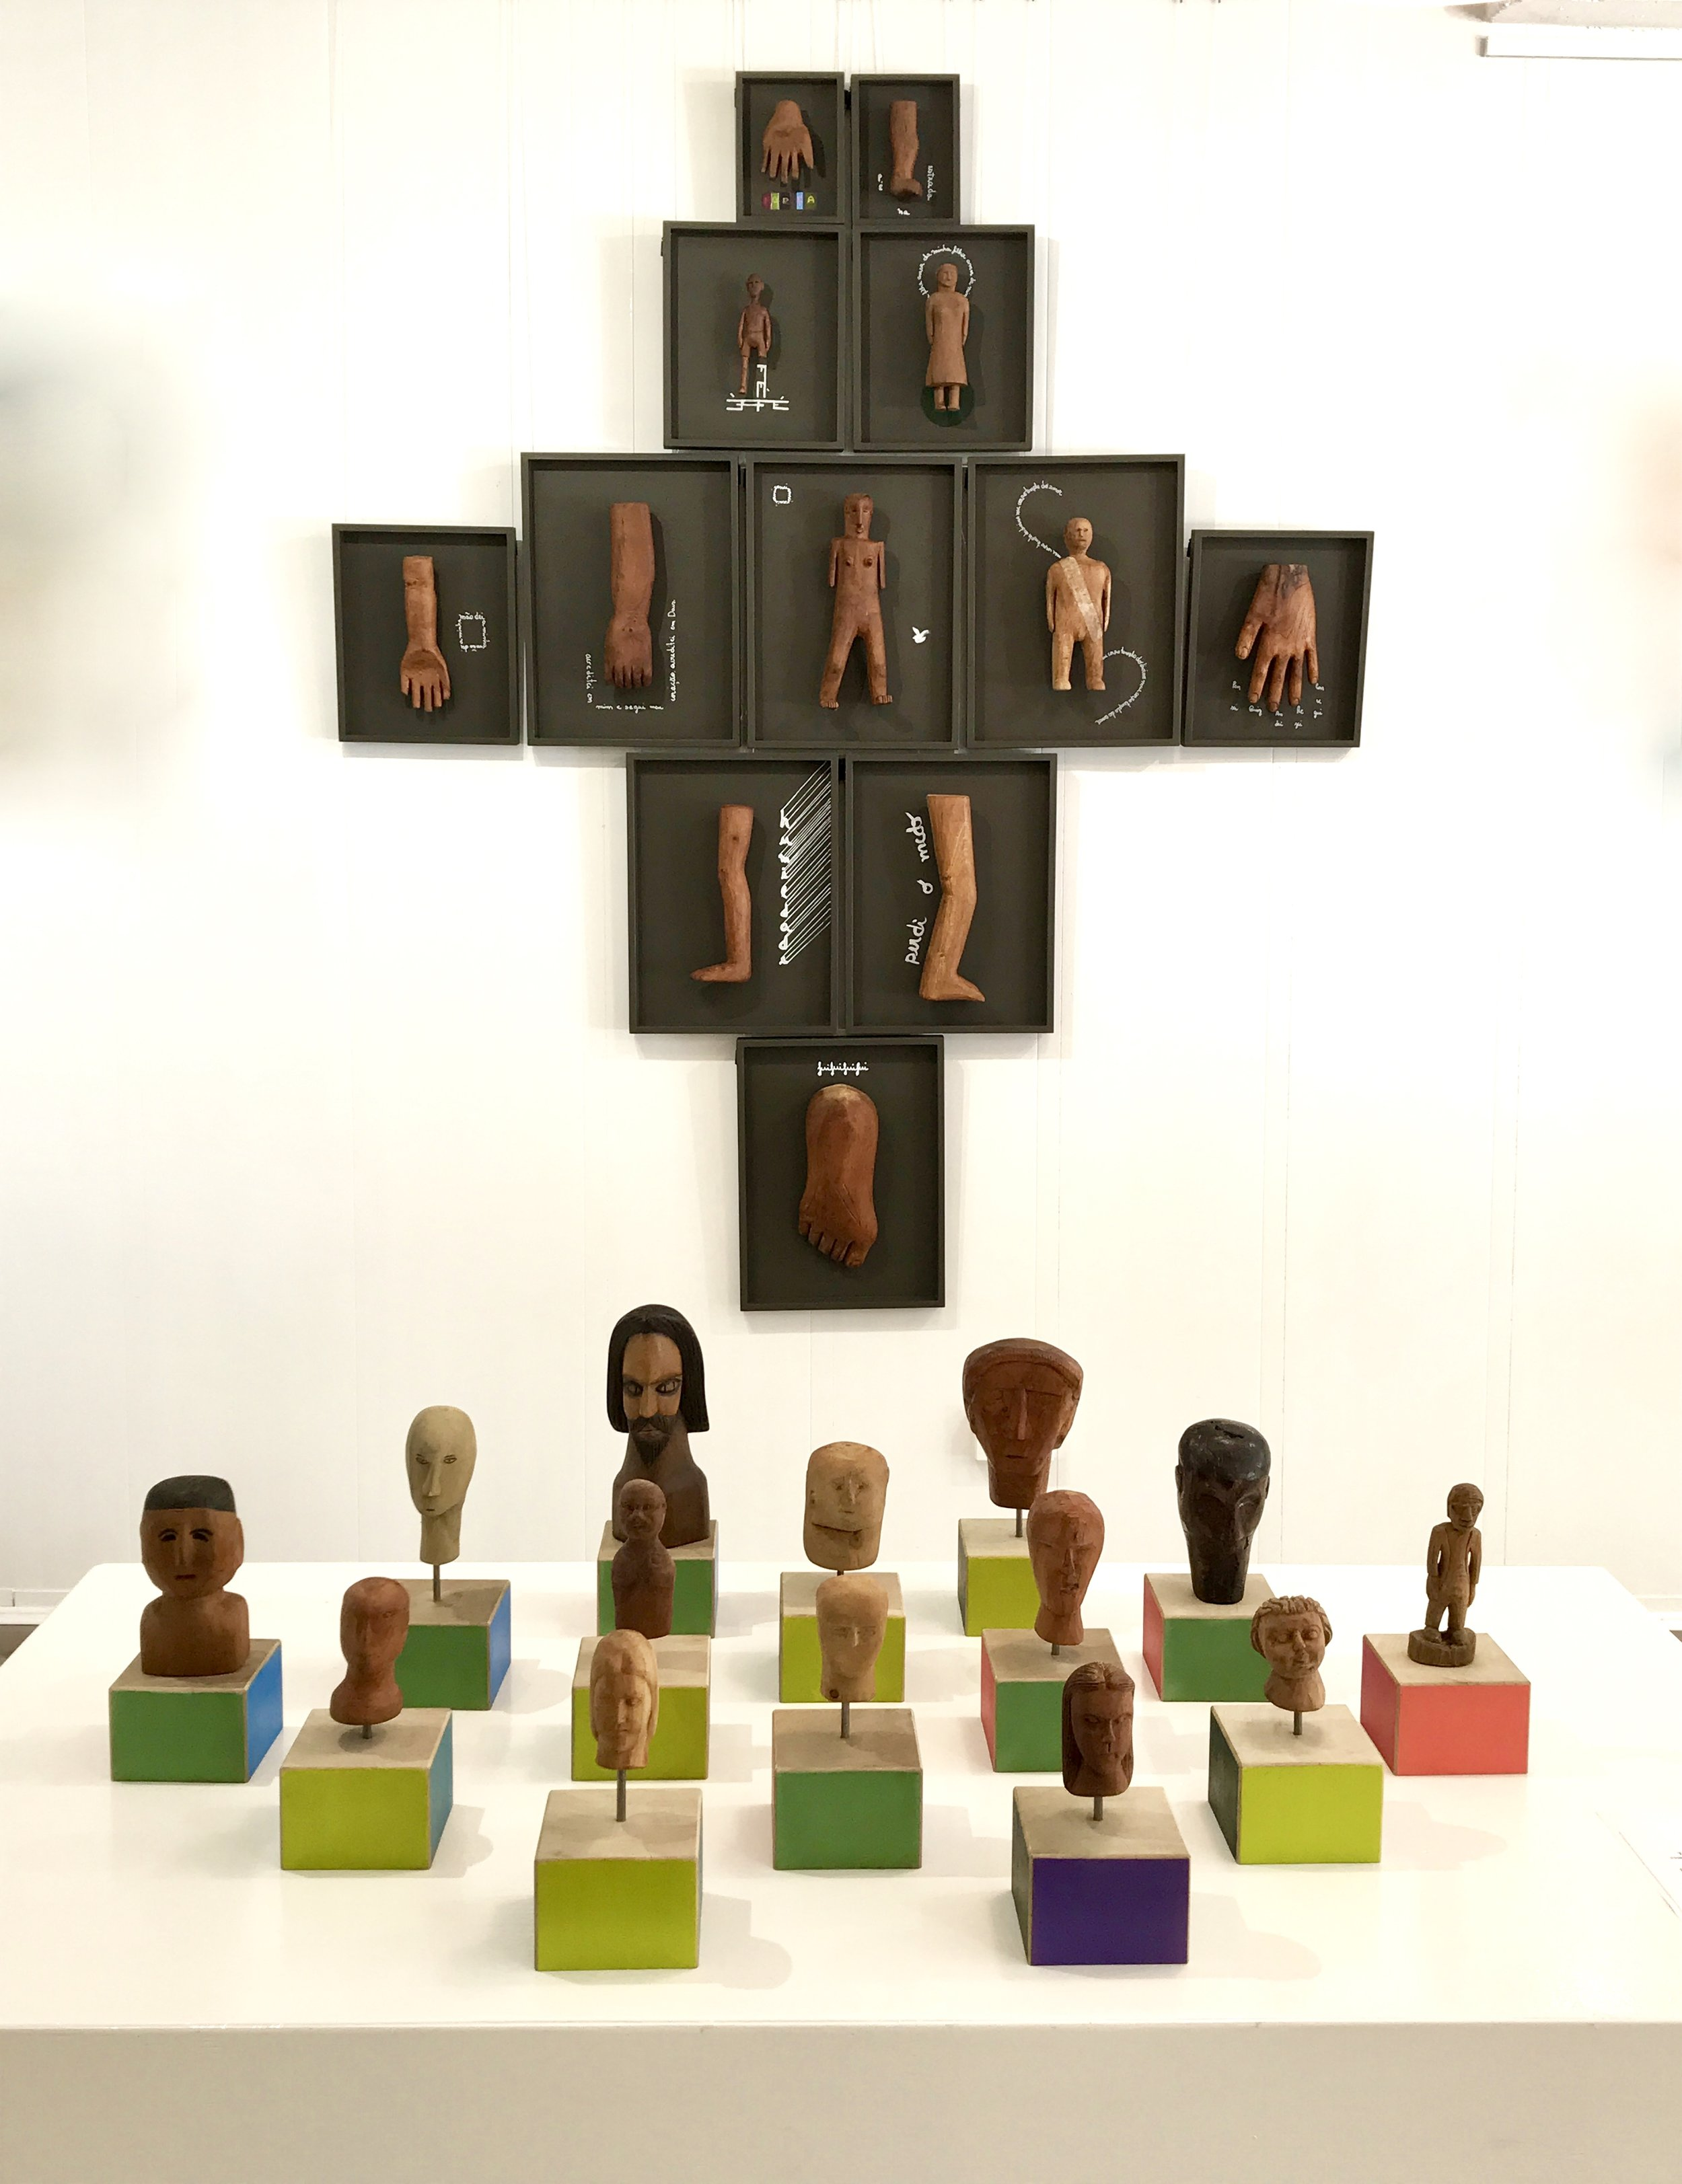 Installation view Mythical Speech, 2019, wood, steel and acrylic paint, exhibited at Be Brave Art Space - 8 February to 3 March 2019